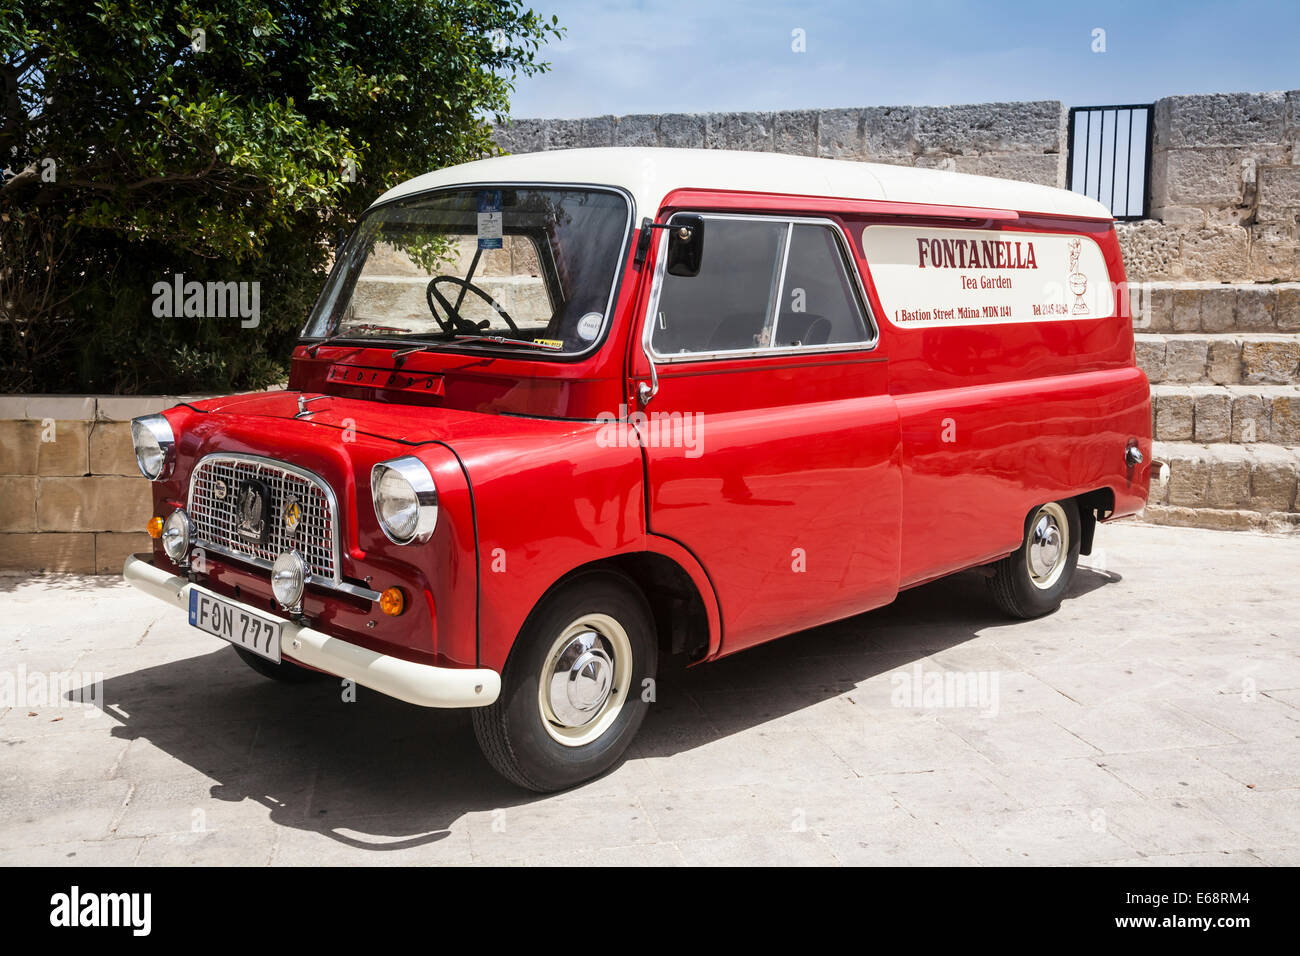 old bedford ca panel van mdina malta stock photo. Black Bedroom Furniture Sets. Home Design Ideas